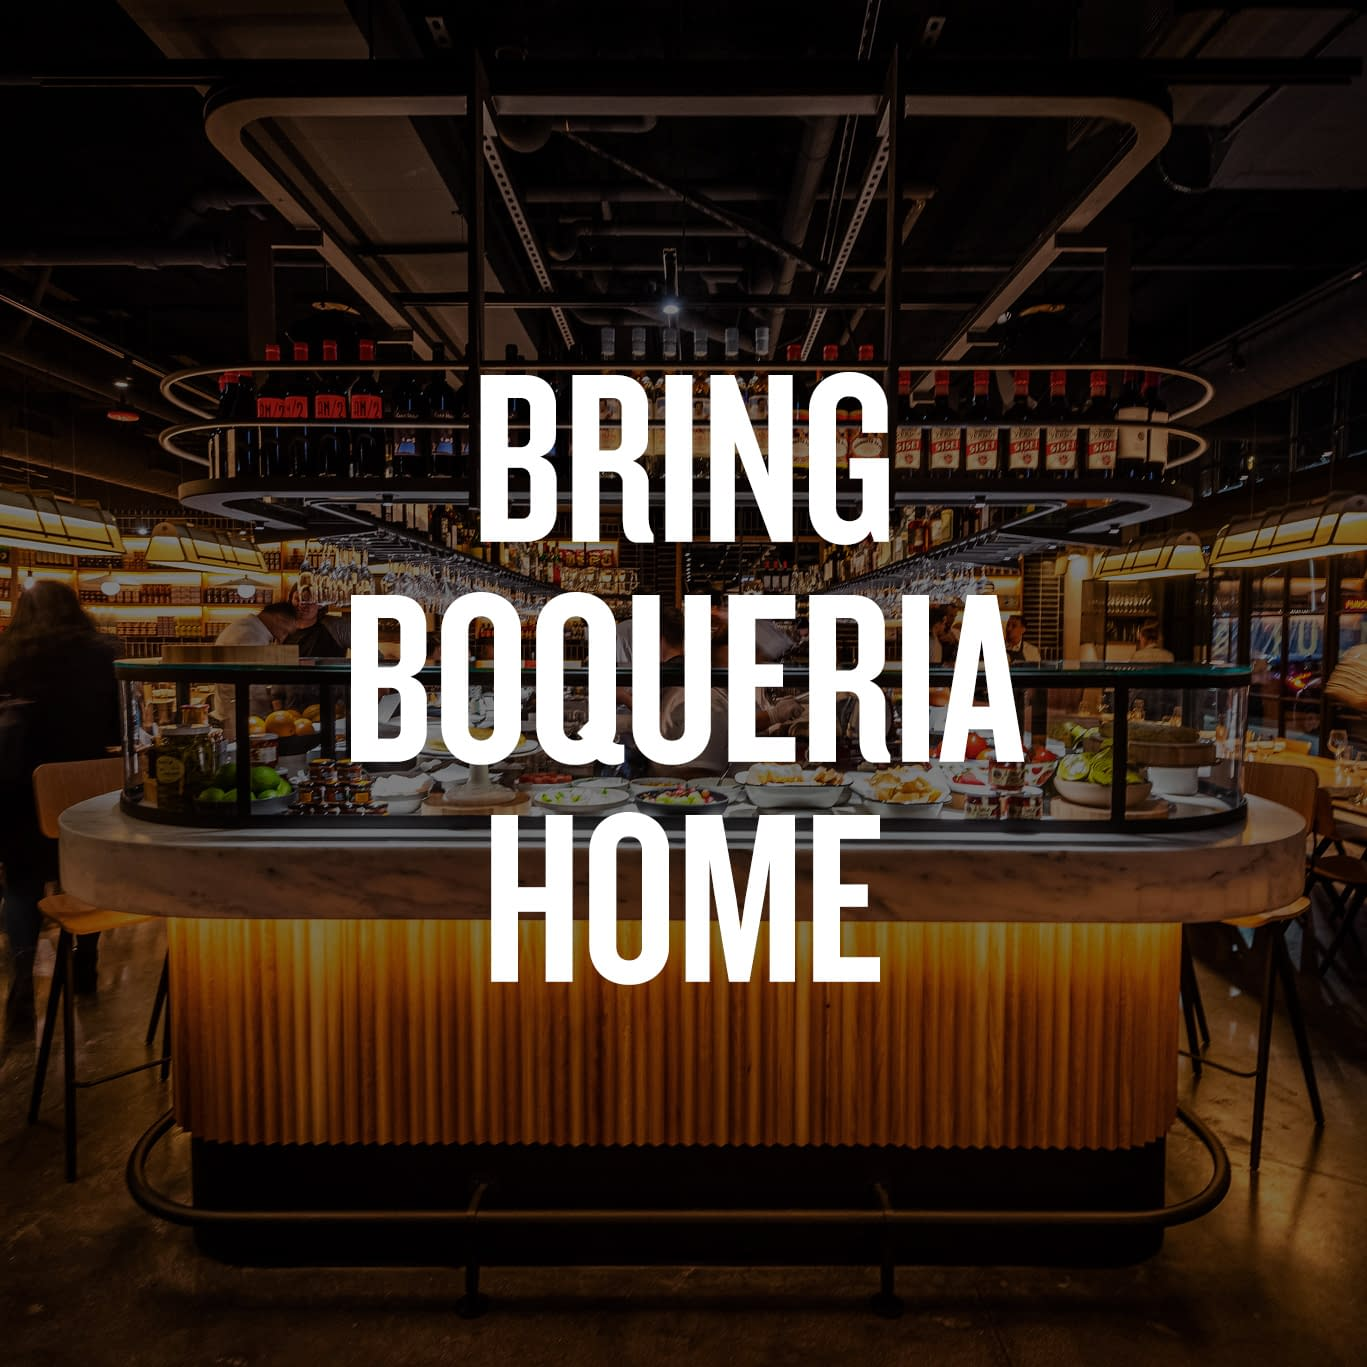 Bring Boqueria Home - Photo of the bar at Boqueria